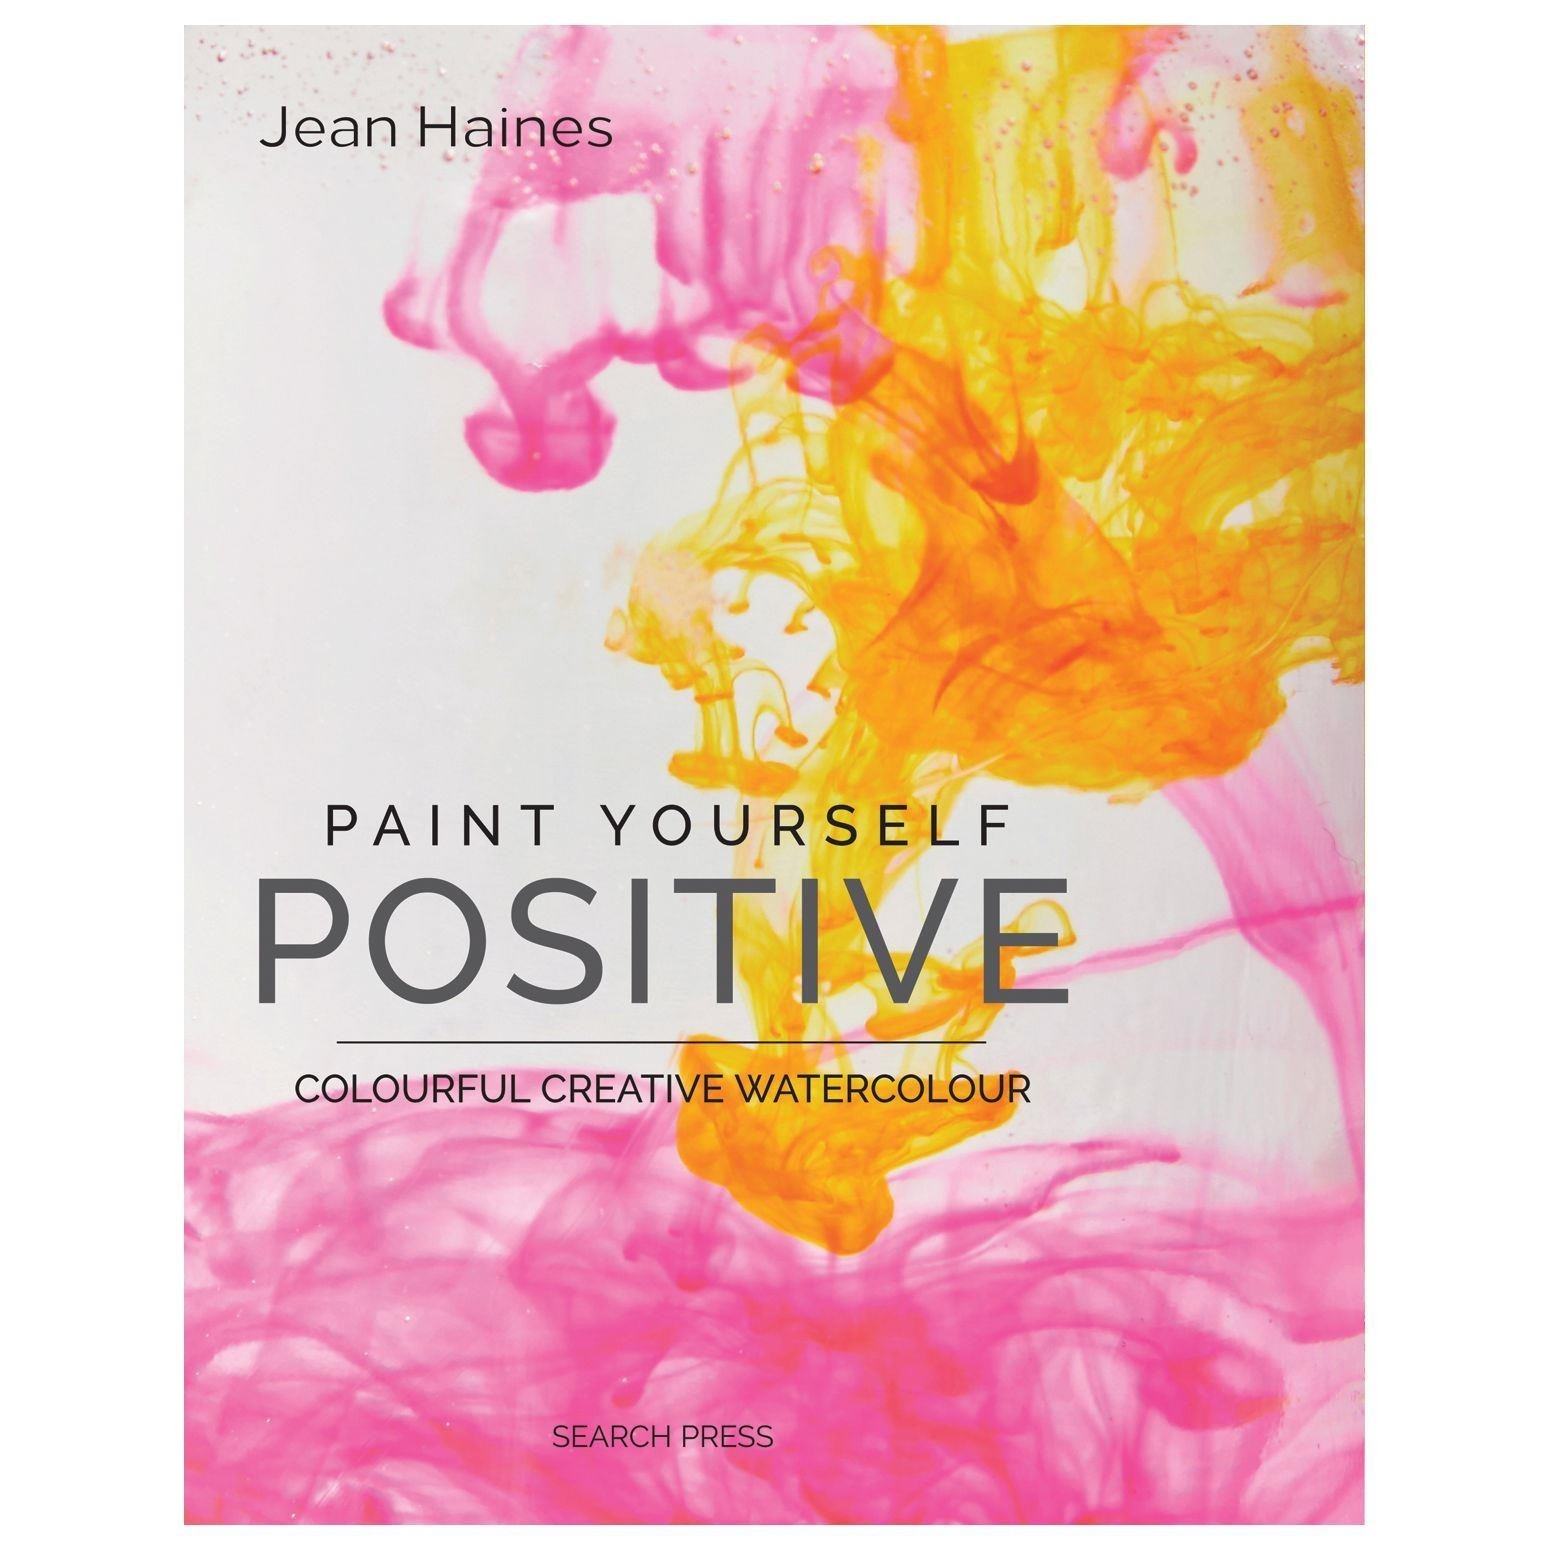 Paint Yourself Positive Colourful Creative Watercolour by Jean Haines